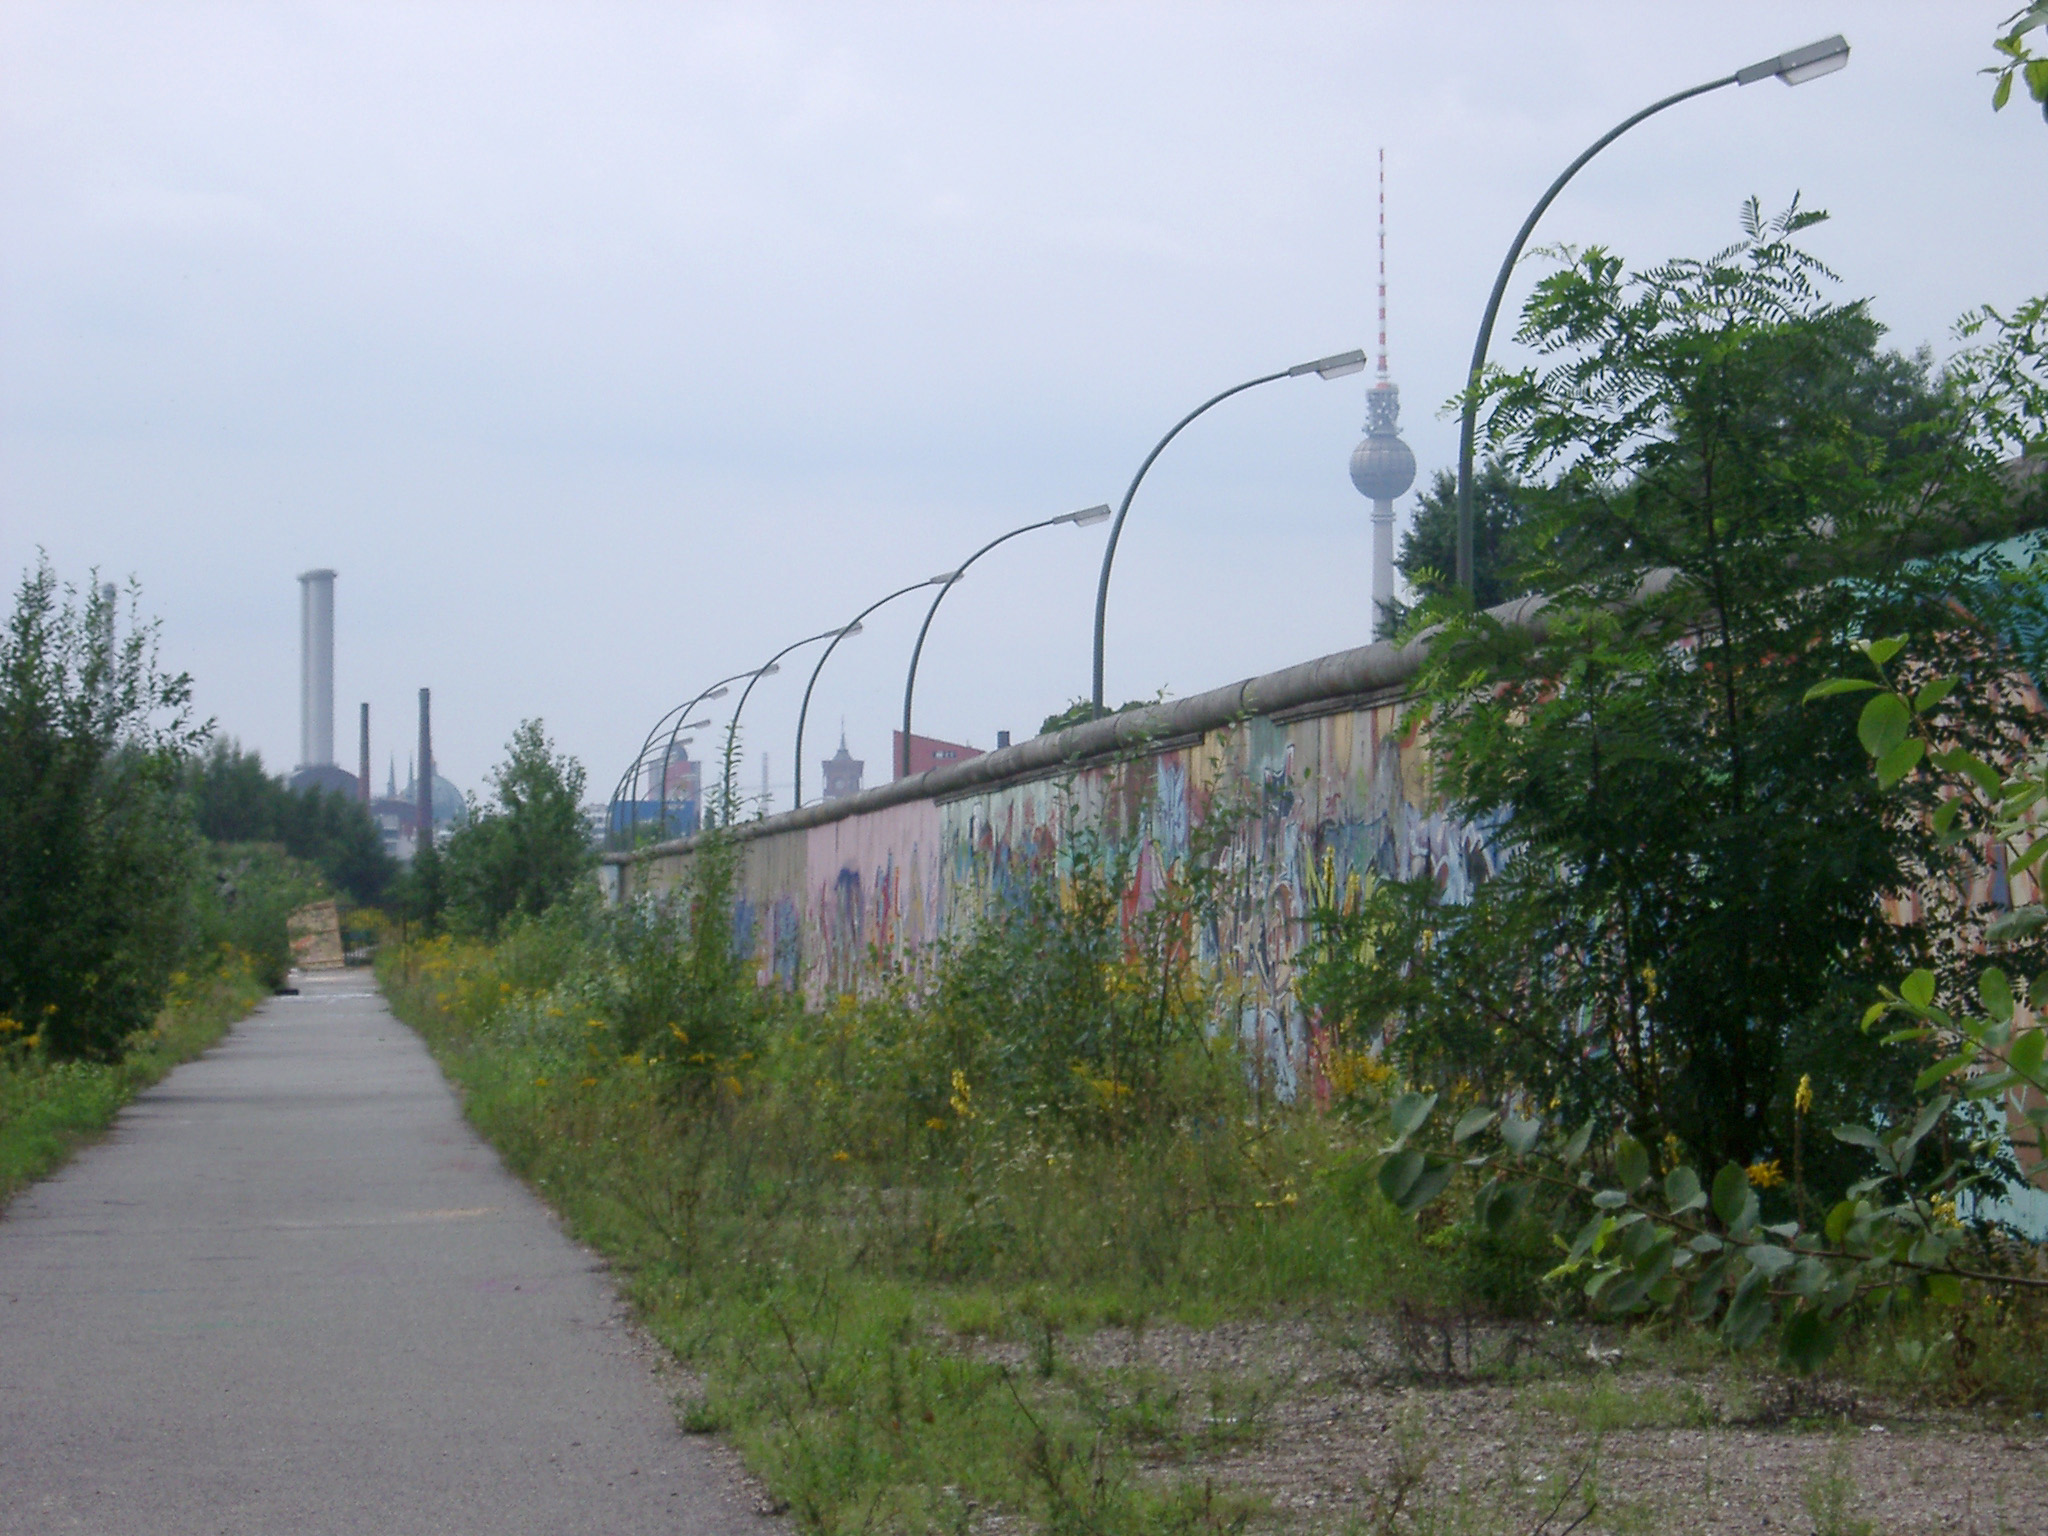 View along a remaining section of the historical Berlin Wall erected by the German Democratic Republic to separate East and West Berlin